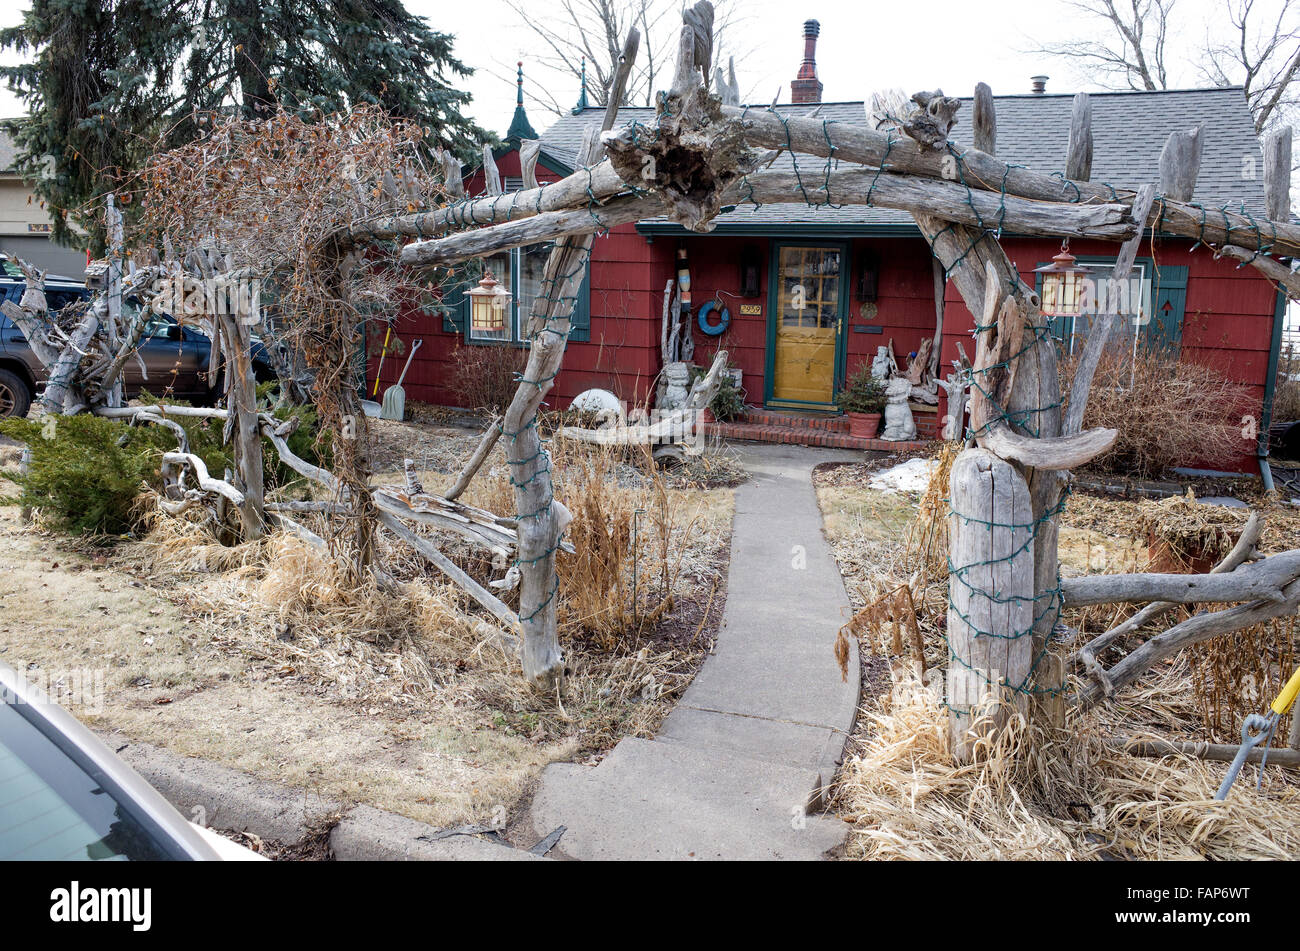 Fanciful house with driftwood fence and entry trellis located in the Park Point neighborhood. Duluth Minnesota MN - Stock Image